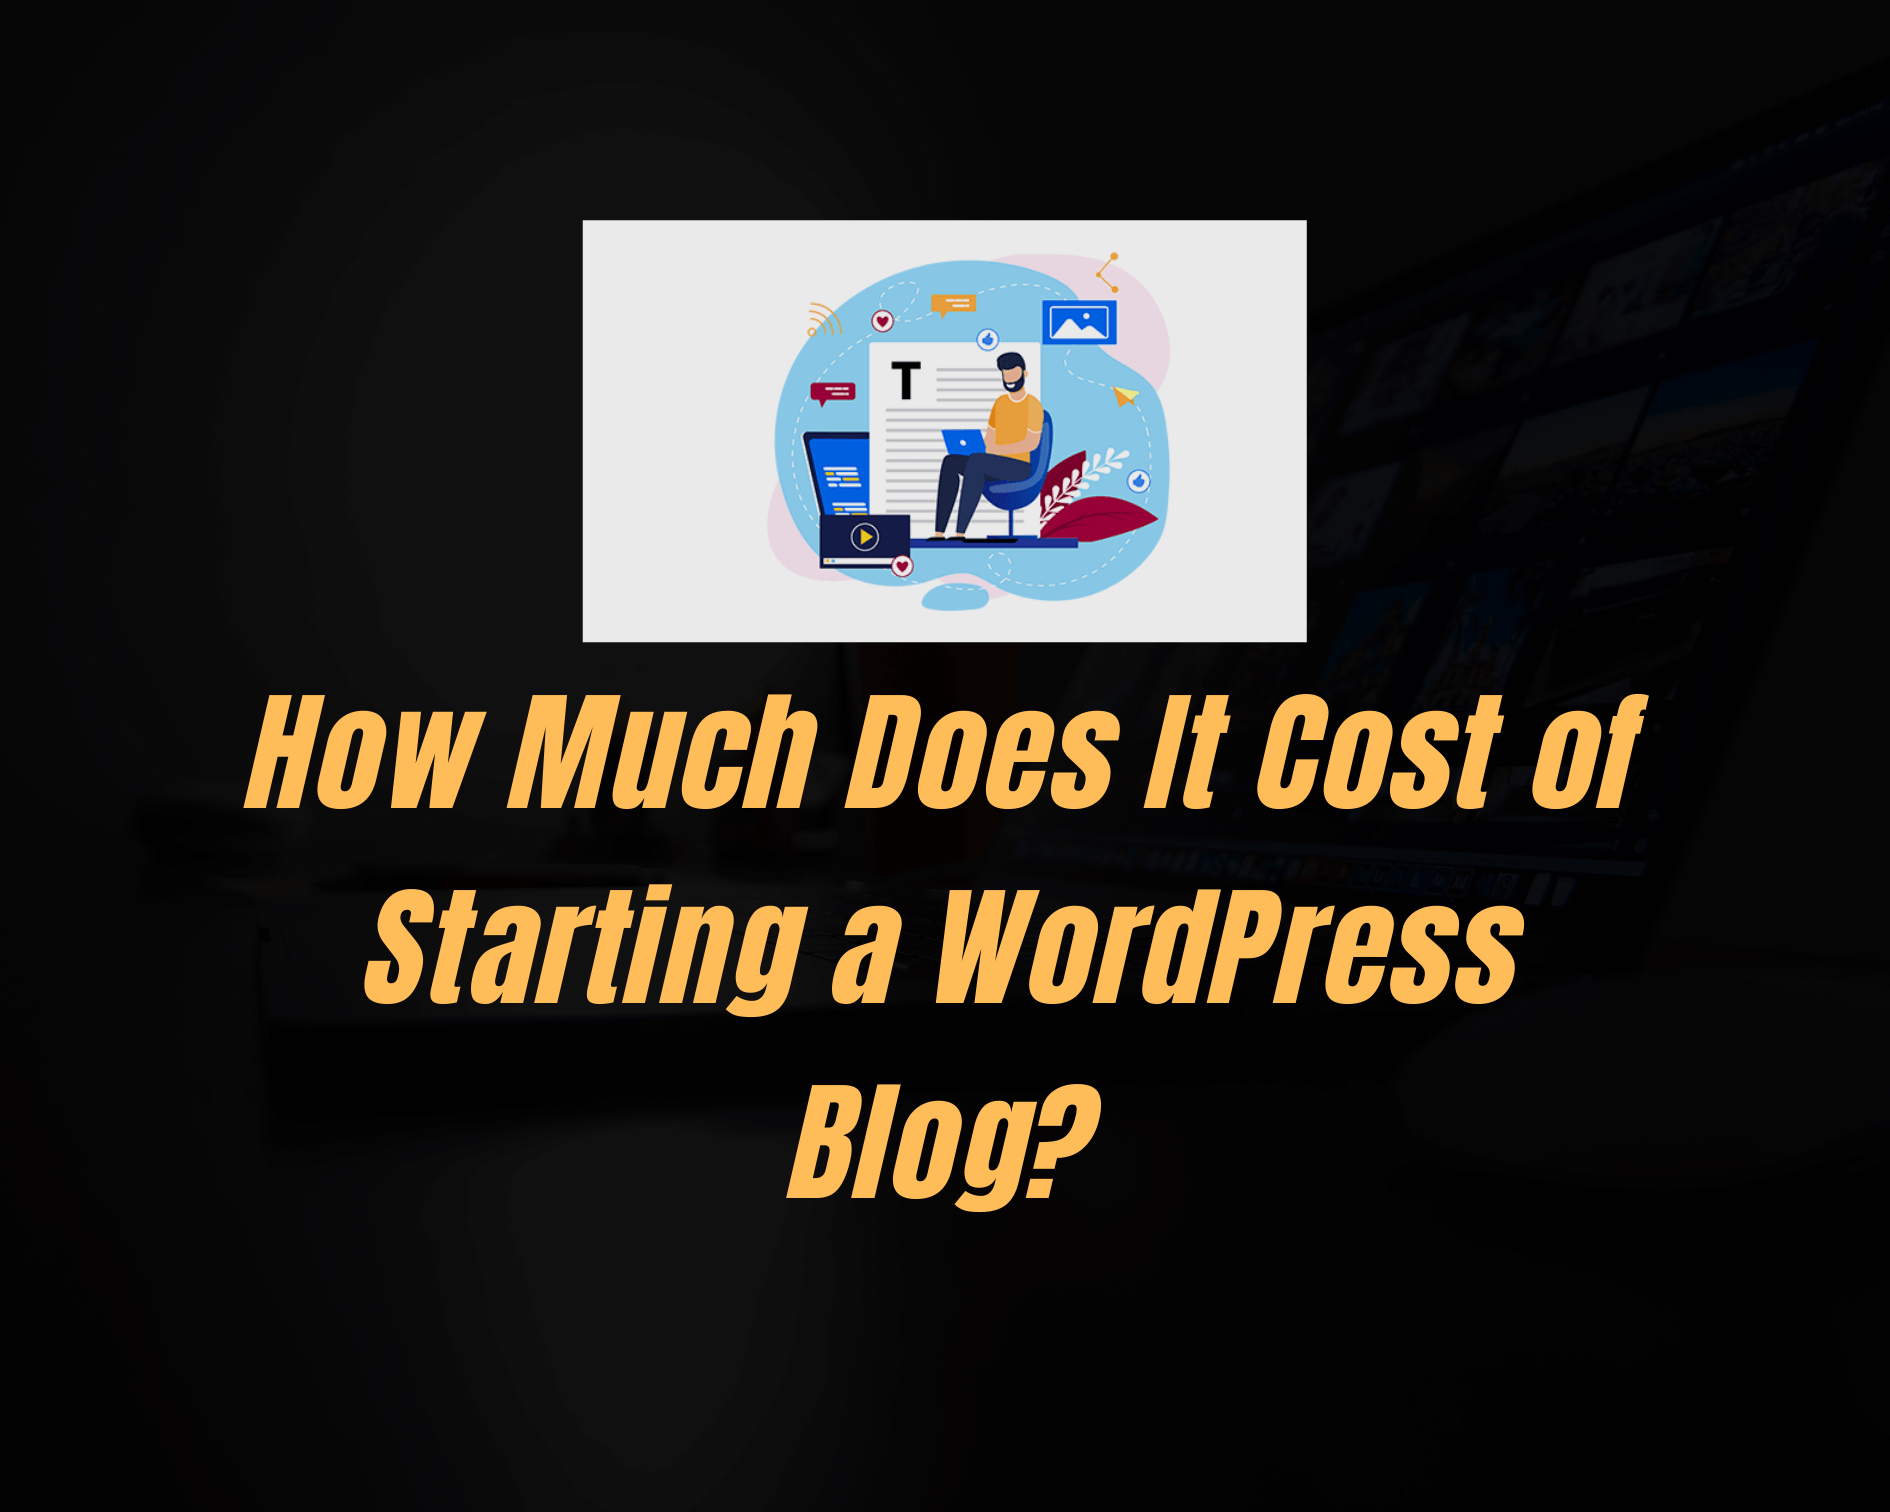 Cost of starting a wordpress blog